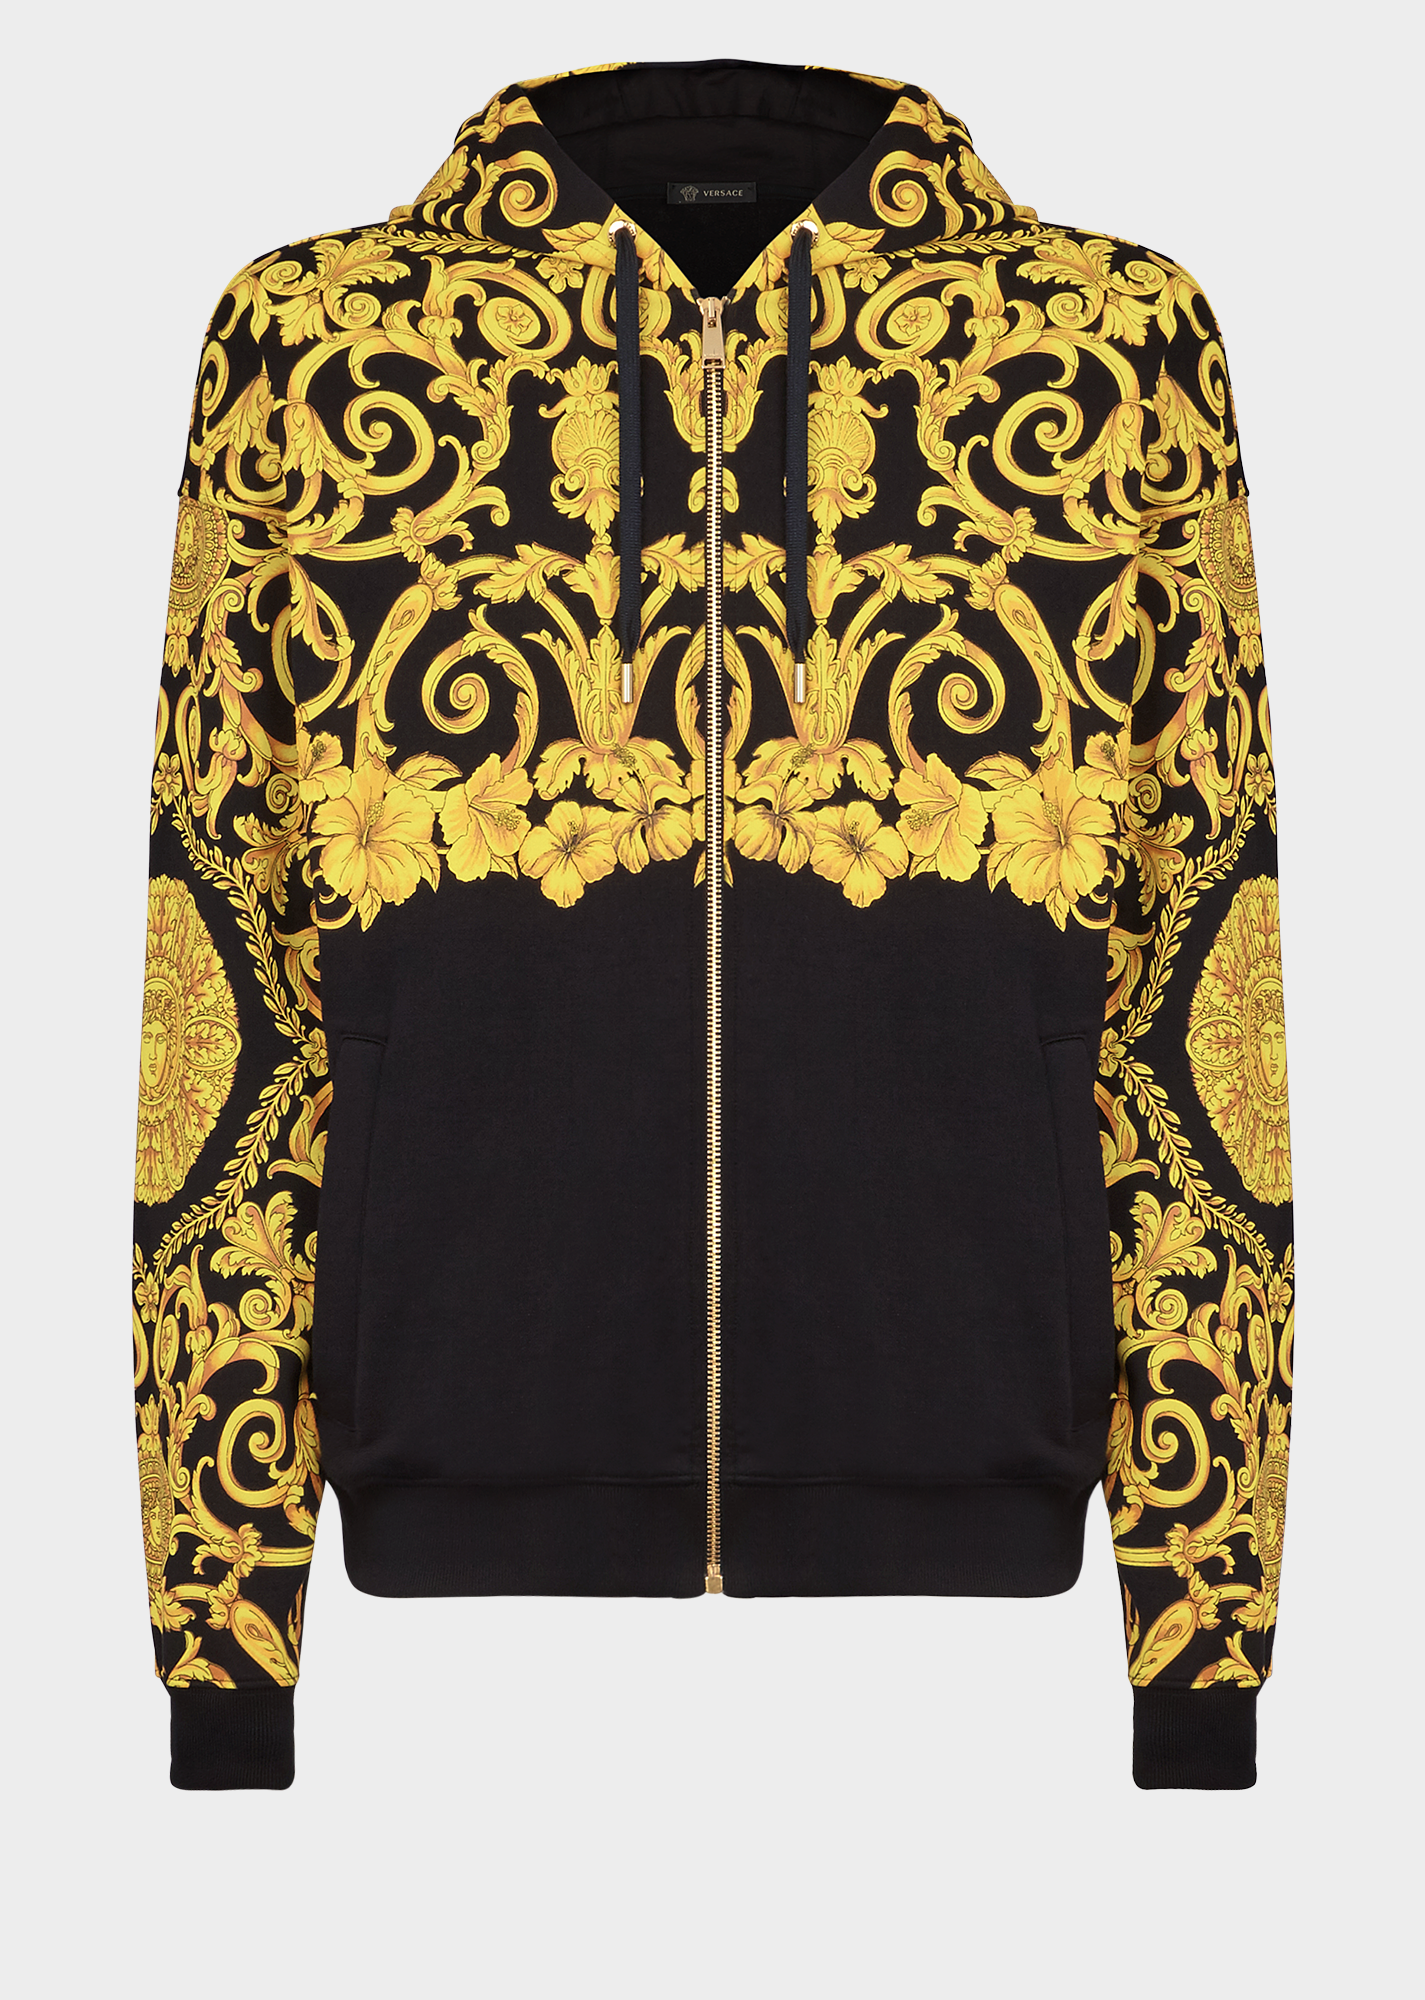 45cc7928 VERSACE Gold Hibiscus Print Zipped Hoodie. #versace #cloth | Versace ...